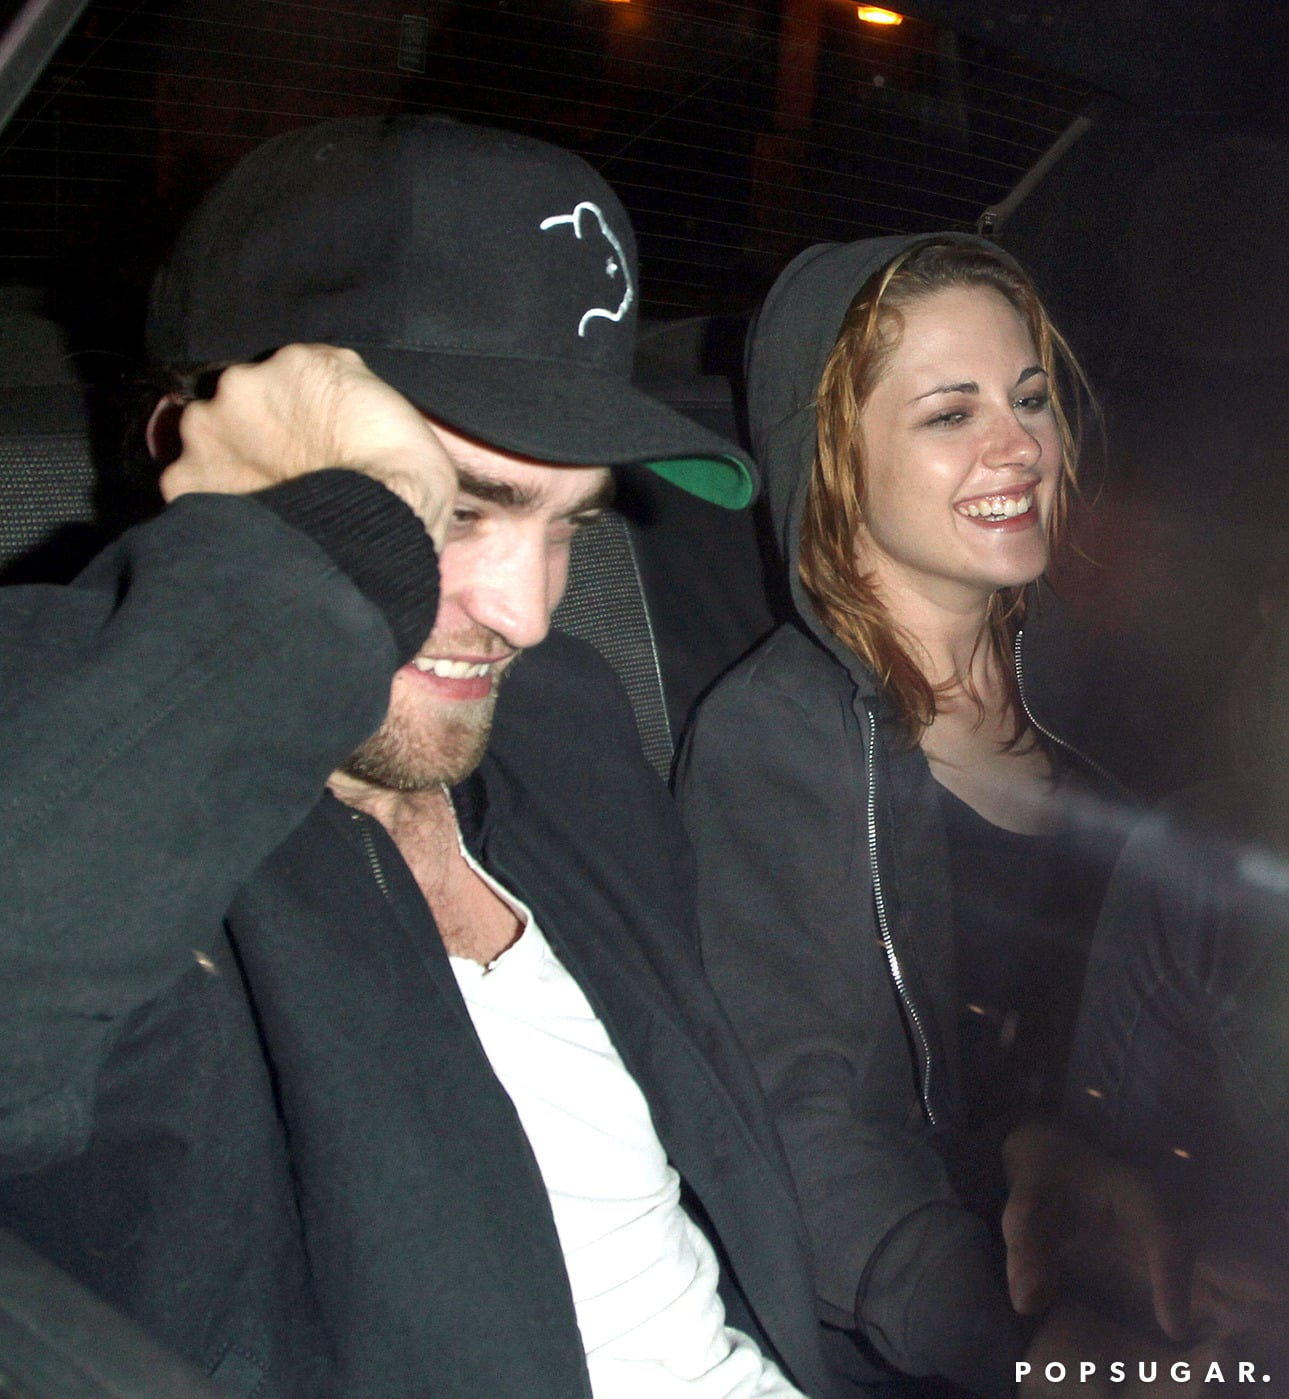 Robert Pattinson and Kristen Stewart shared a laugh and linked arms as they rode in a taxi together after a night out in LA in October 2010.